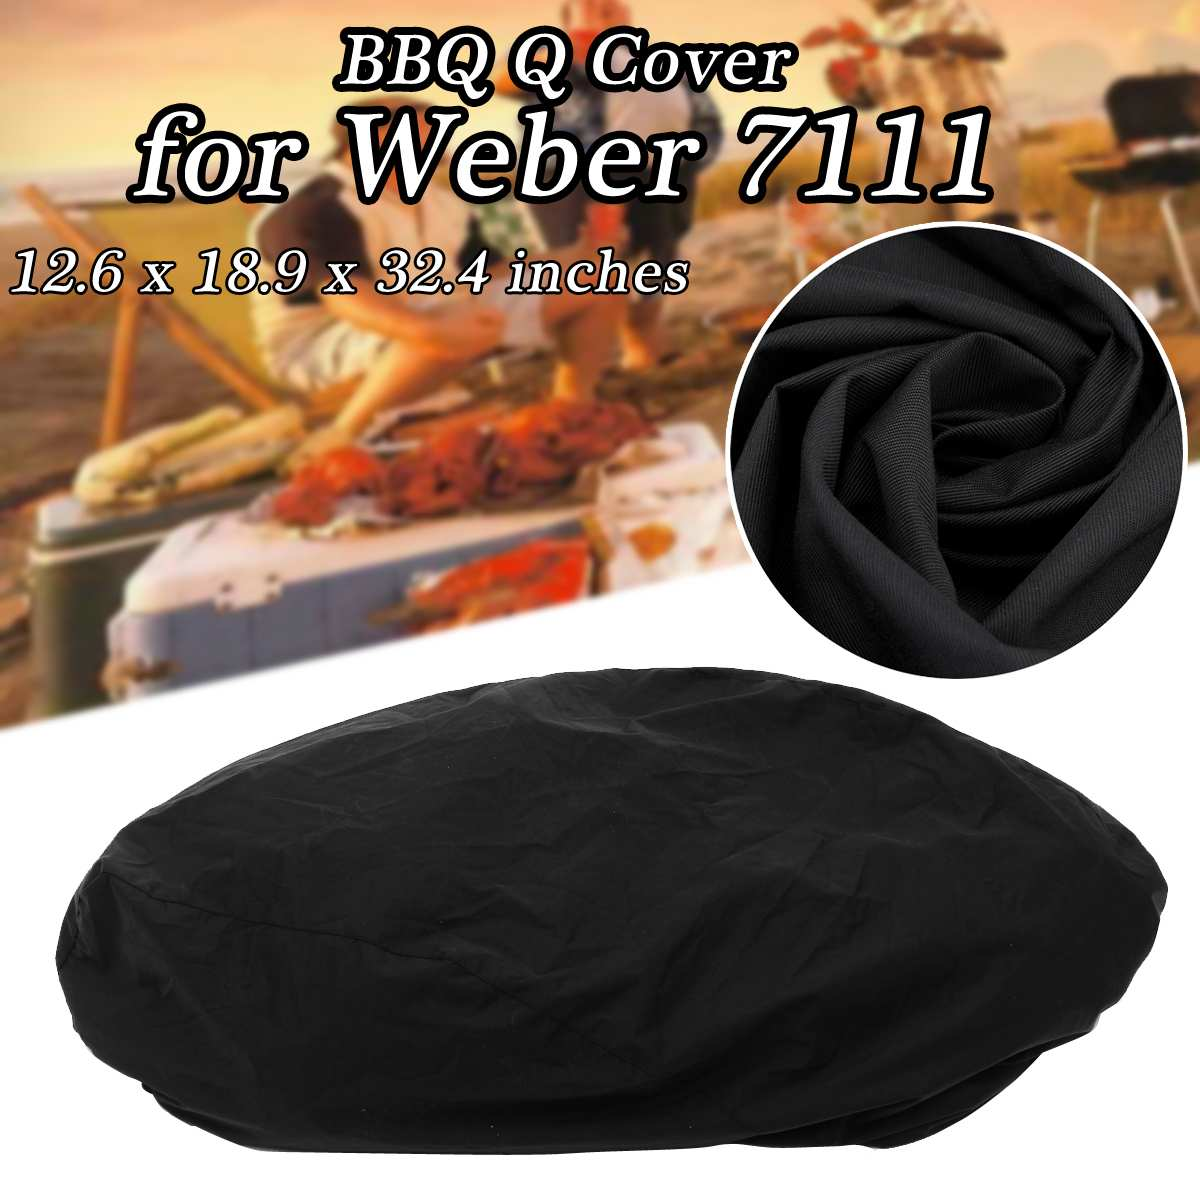 12.6x18.9x32.4 inch Waterproof BBQ Cover Accessories Grill Cover Anti Dust Rain Gas Charcoal Barbeque Grill for Weber 7111 Black Гриль